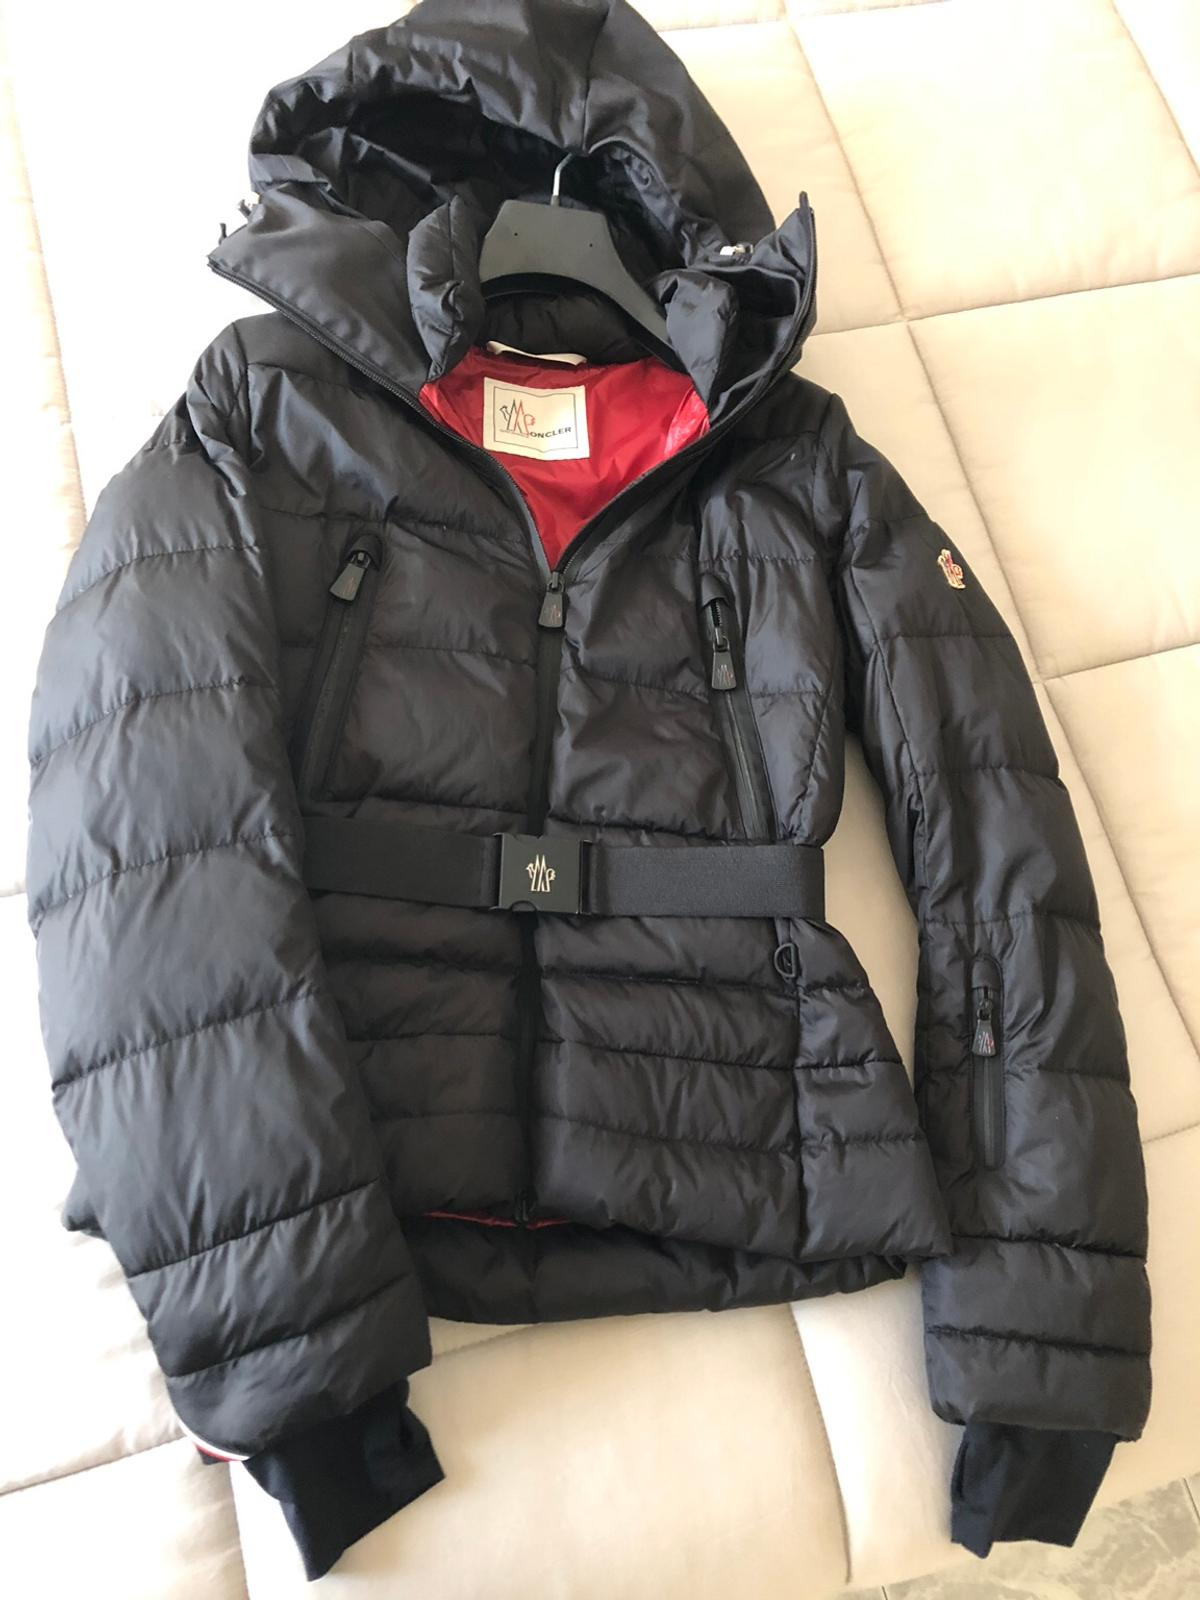 quality design 990a1 483c9 GIUBBOTTO MONCLER DONNA S in 20835 Monza for €350.00 for ...